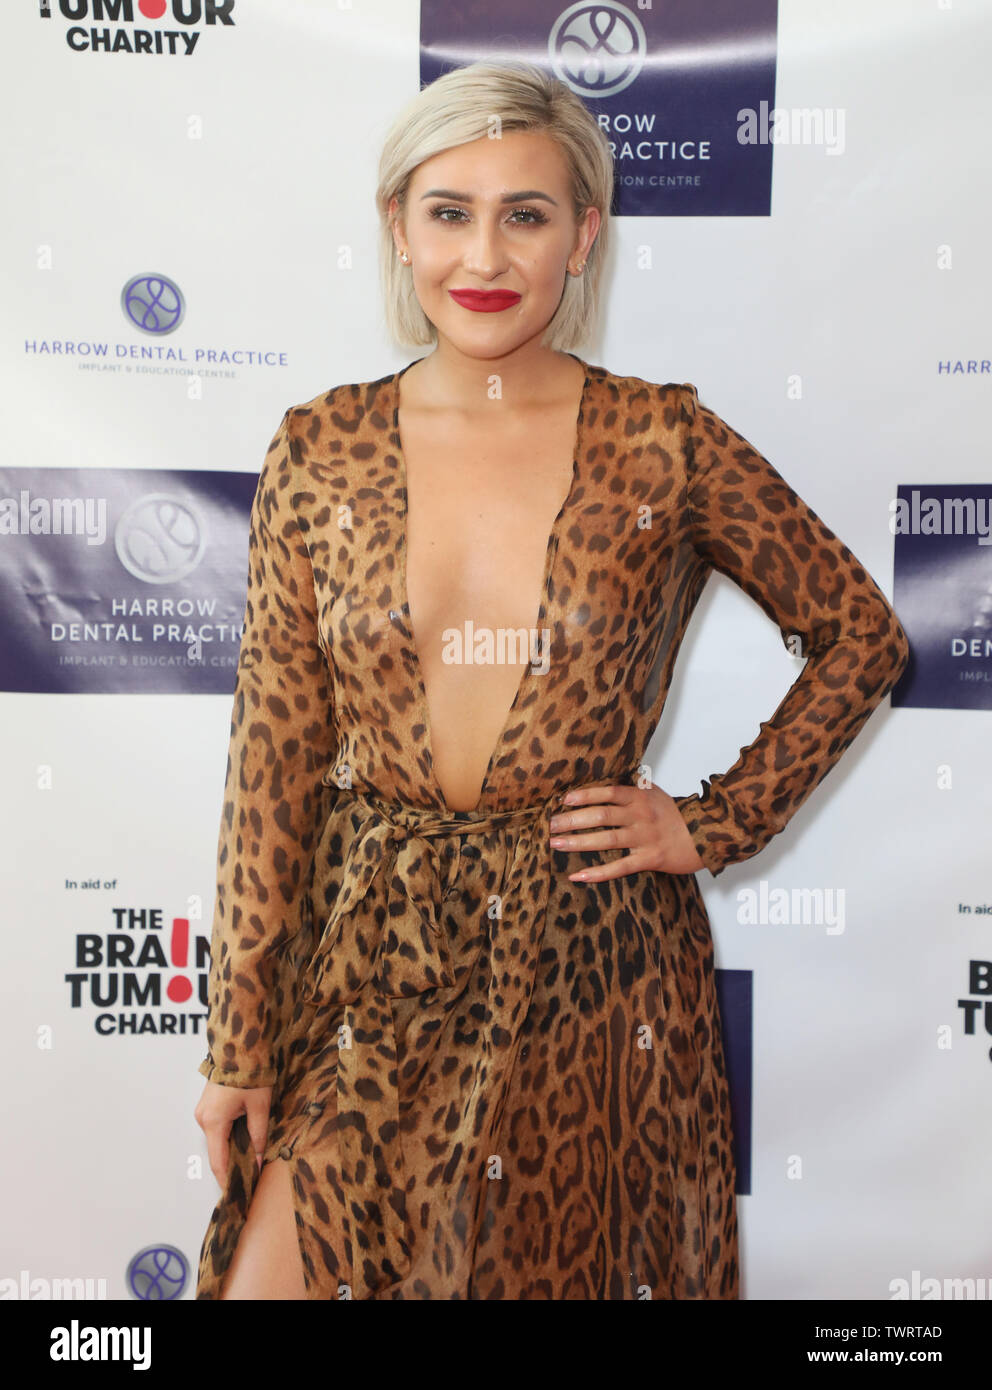 Frankie Maddin attending Harrow Dental Practice's first ever charity gala dinner in aid of The Brain Tumour Charity at the Intercontinental 02 Hotel in London Stock Photo